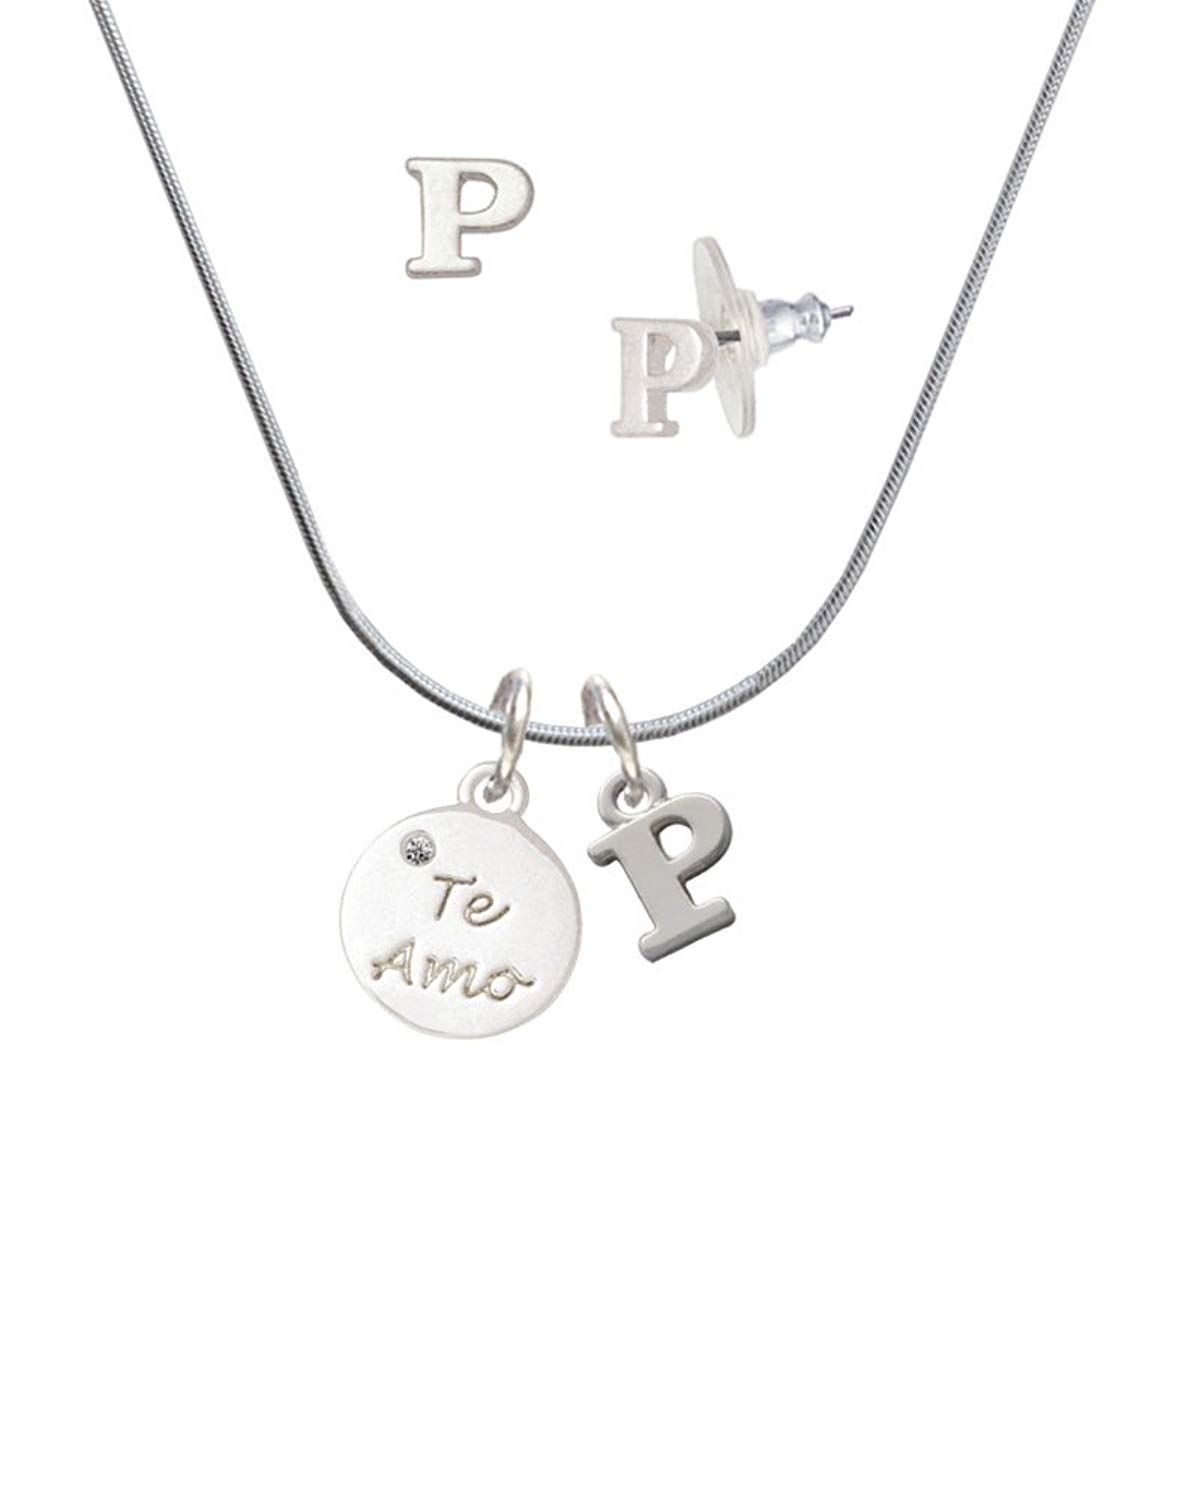 7e2fbef40 Silvertone Te Amo Disc - P Initial Charm Necklace and Stud Earrings Jewelry  Set -- Wonderful of you to drop by to see the image.